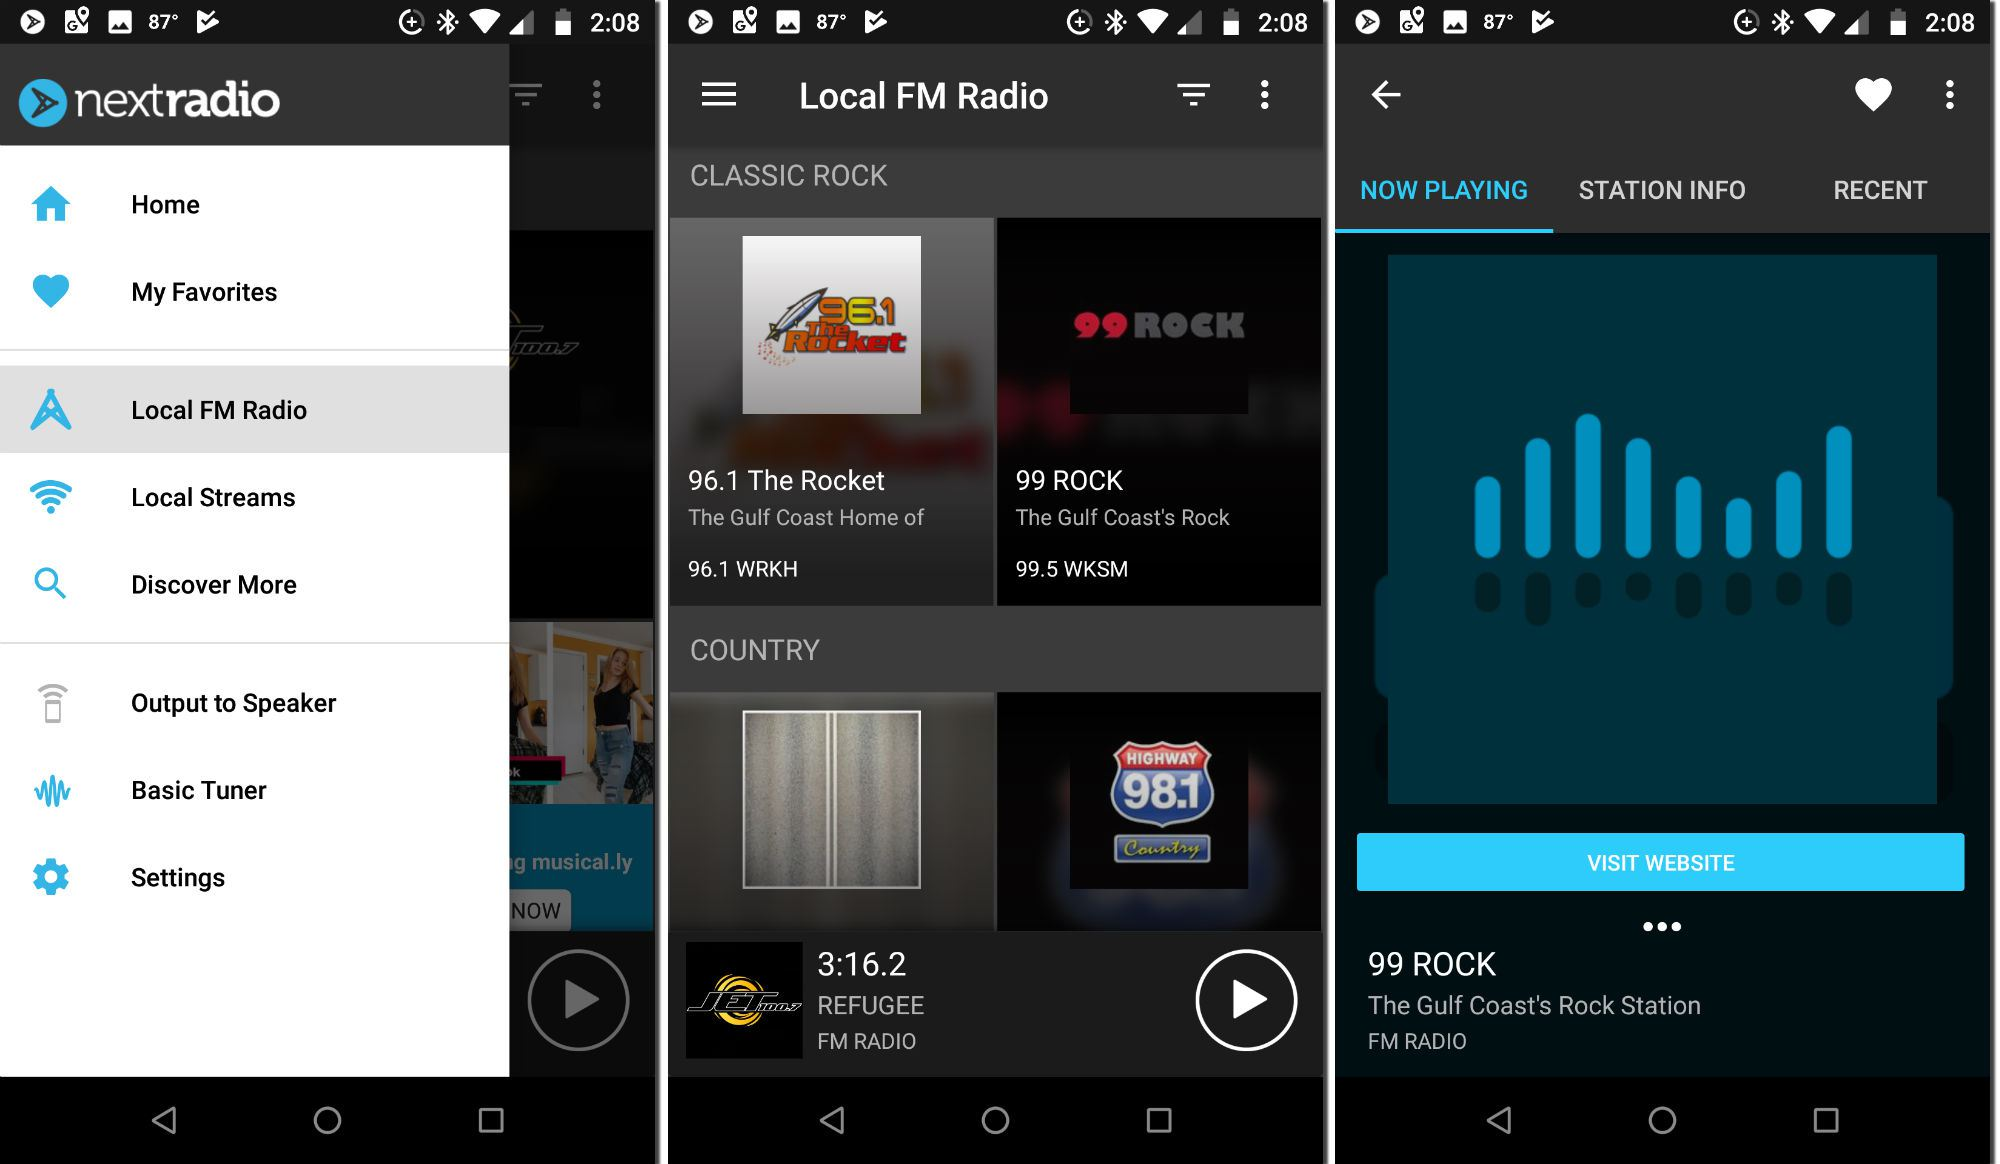 FM Radio on Your Phone Without Data